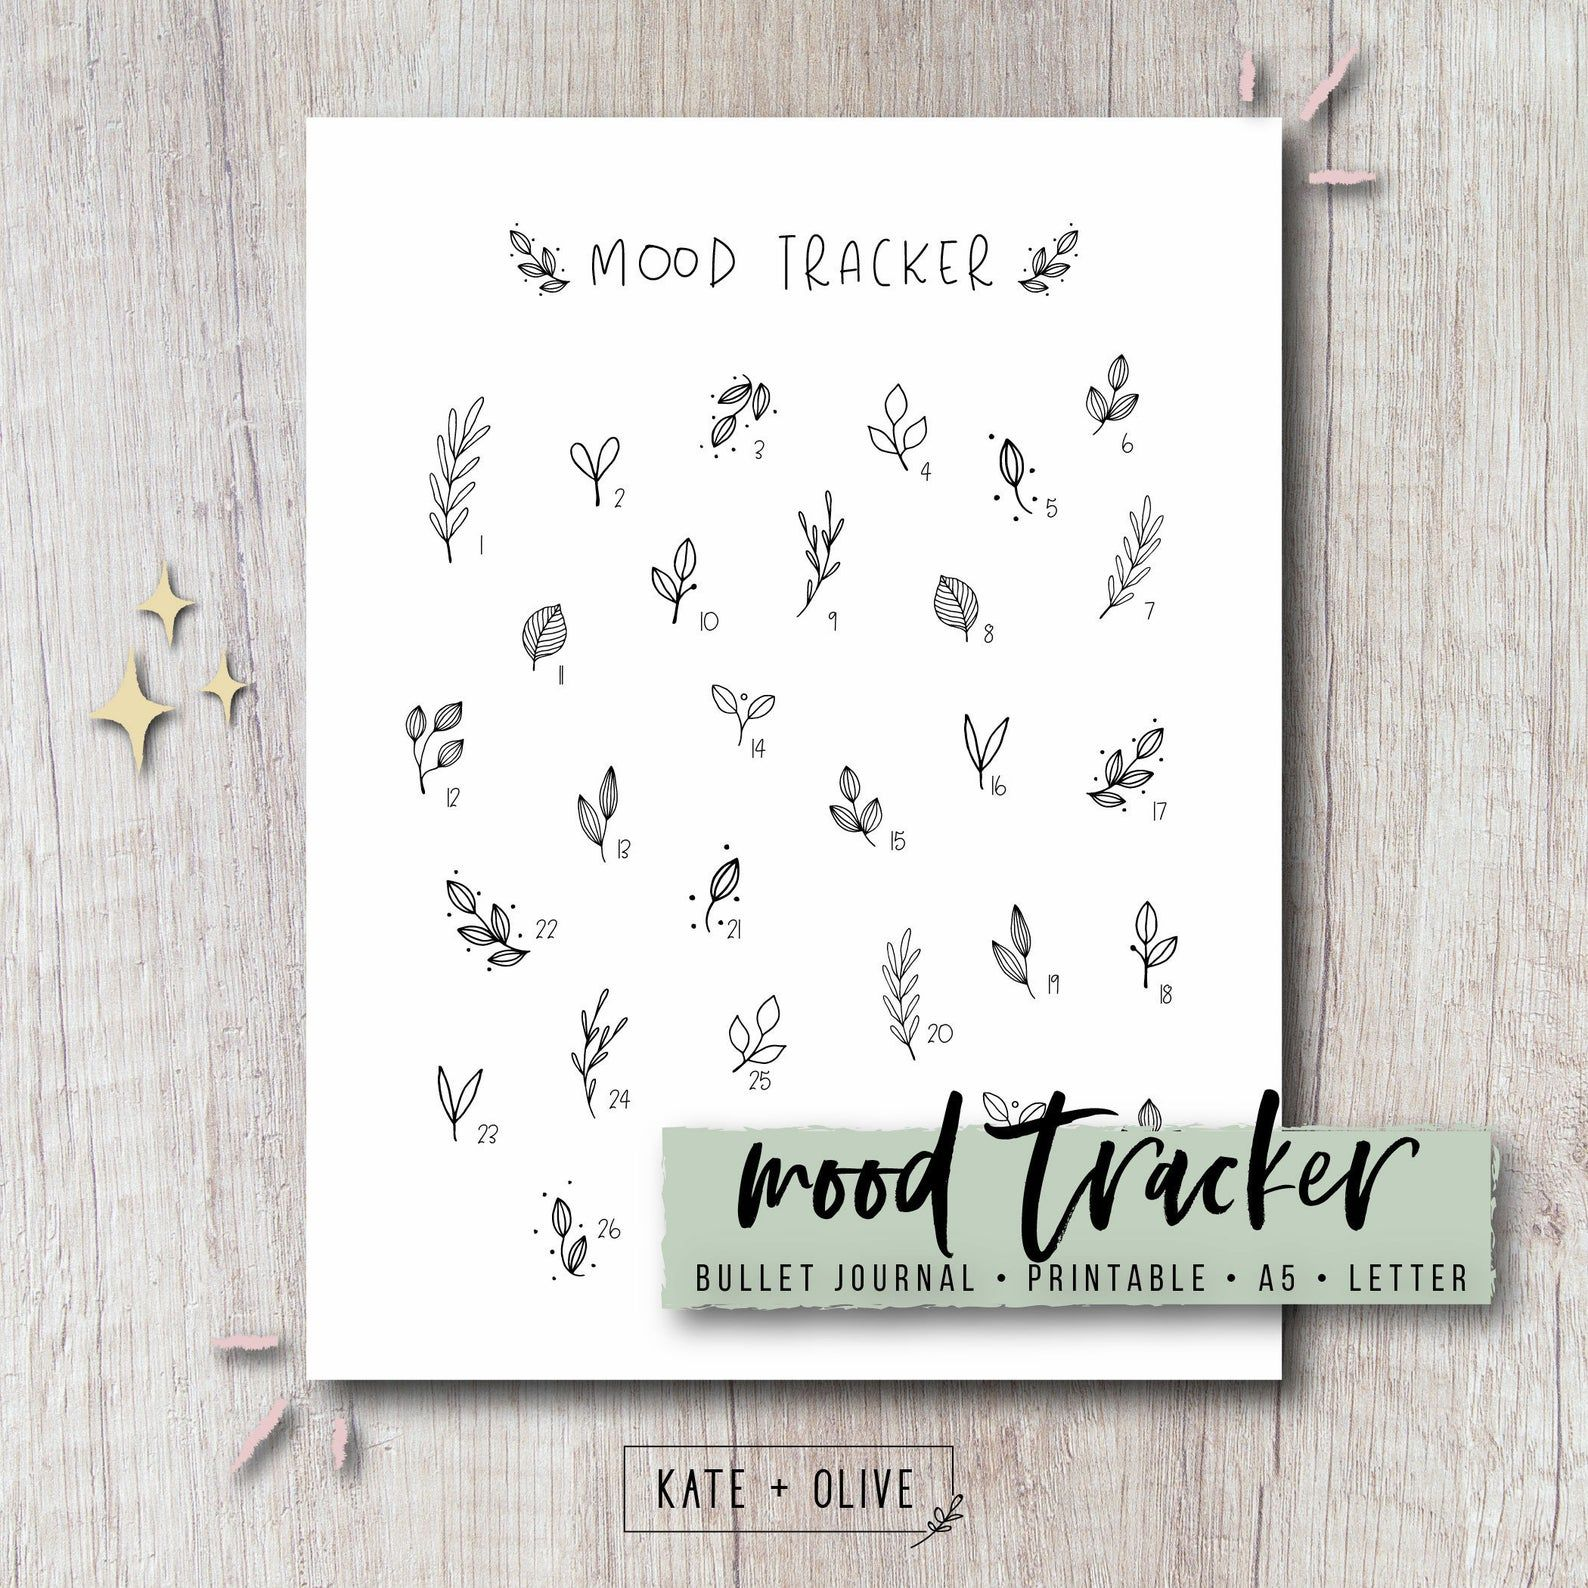 Mood Tracker Printable Insert for Bullet Journal & Planner  | Etsy